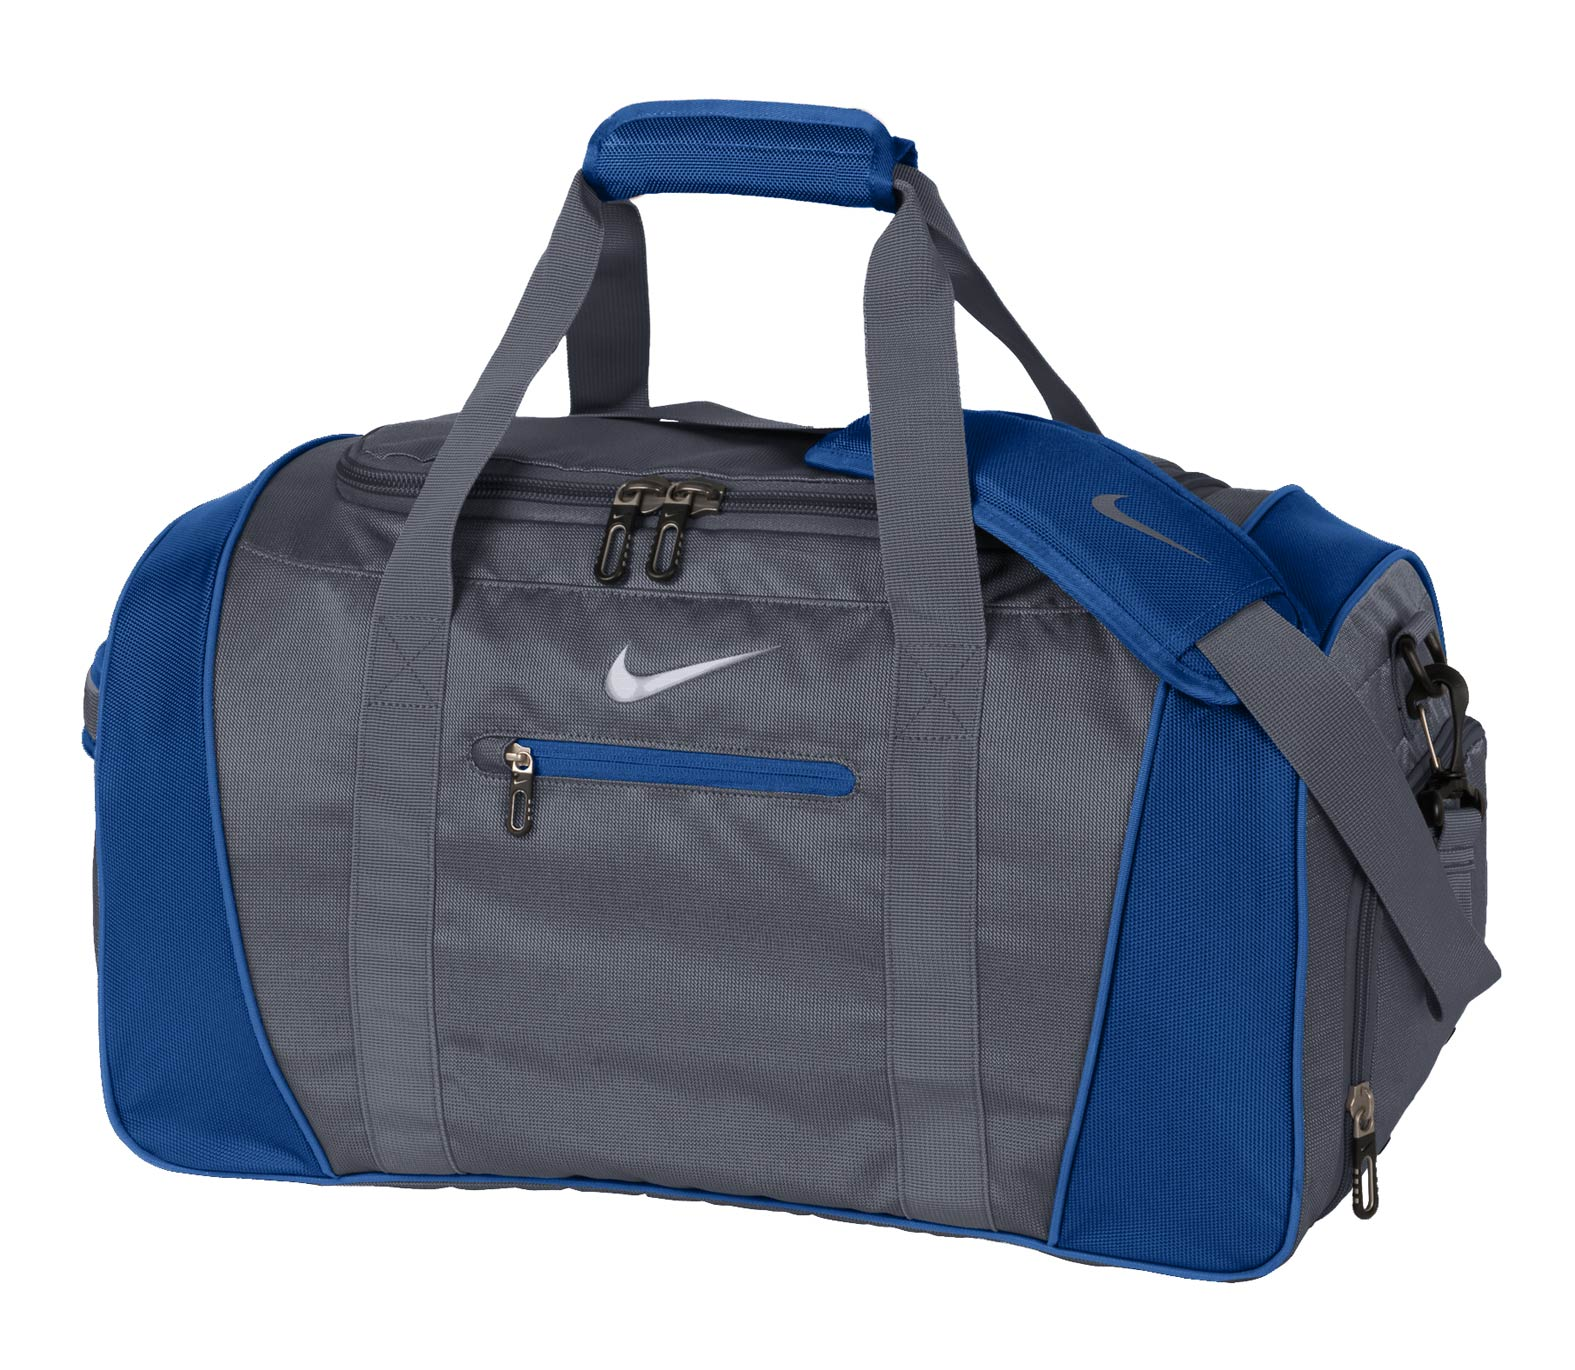 f5f846331447 Custom Duffle Bags and Sports Bags